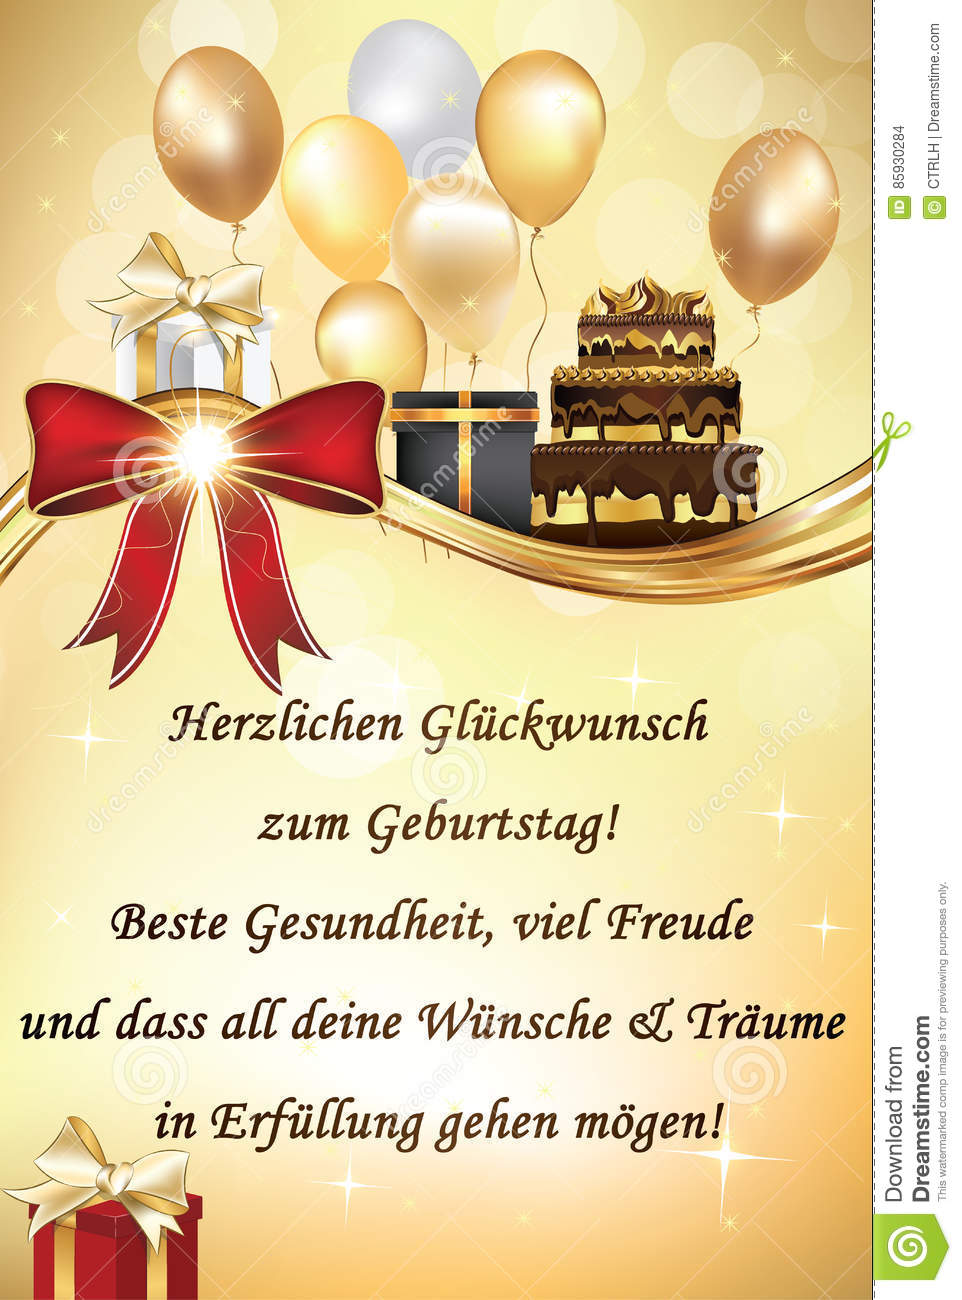 German Happy Birthday Greeting Card With Balloons And Cake Text May You Be Healthy Have A Lot Of Friends All Your Dreams Fulfilled Print